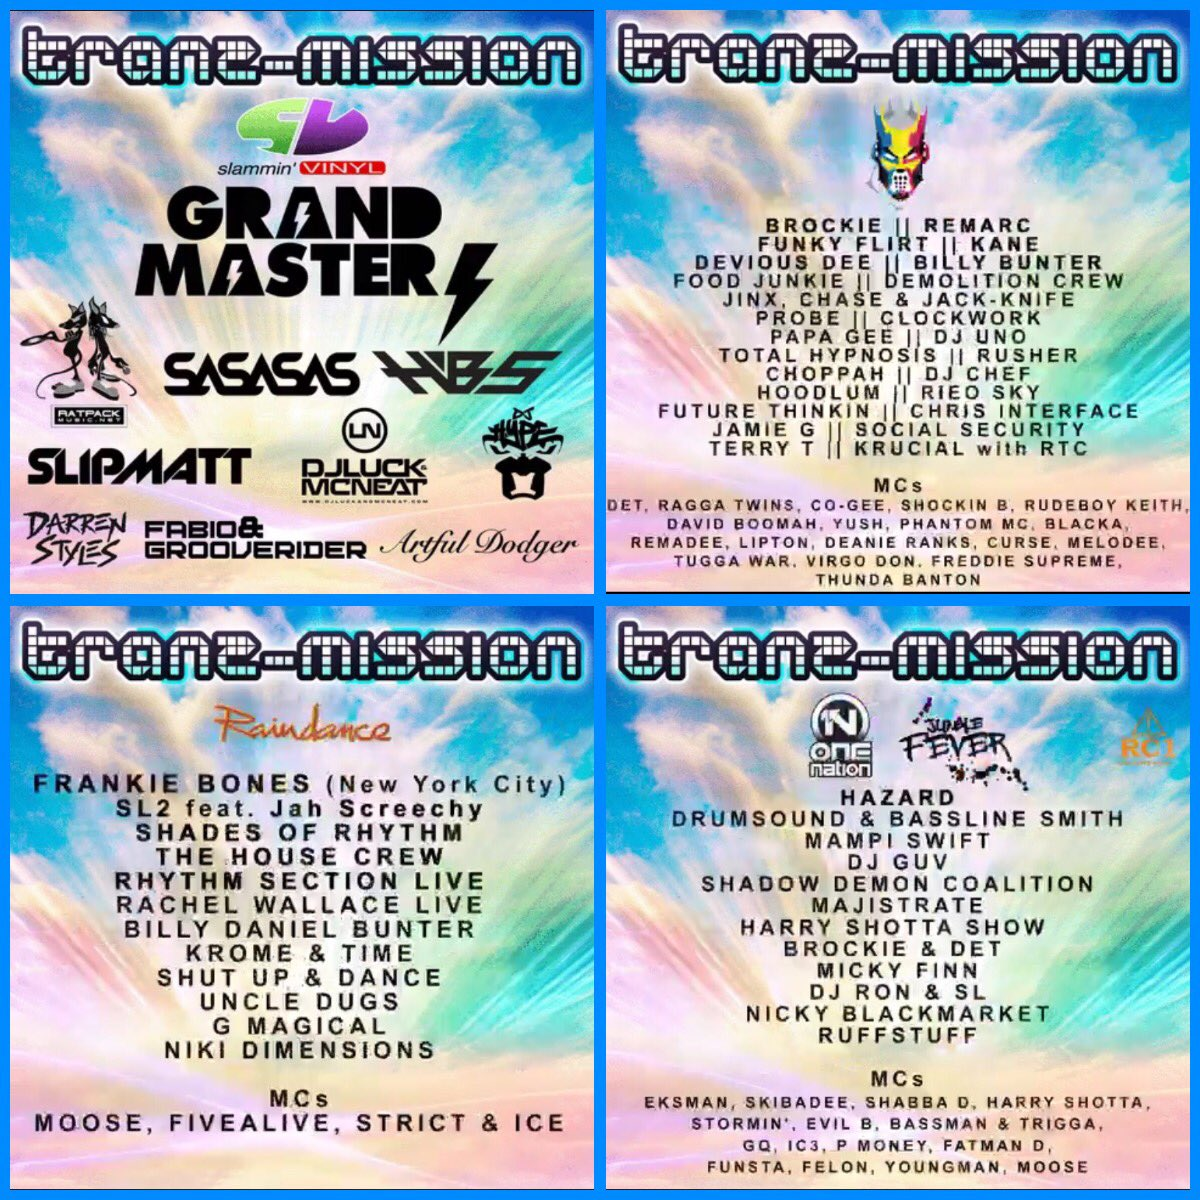 PLEASE RETWEET. London's Rave Festival  tranz-mission Sunday 25th September 2016 #festival #dnb #koollondon #rave https://t.co/l2AnRwlgav